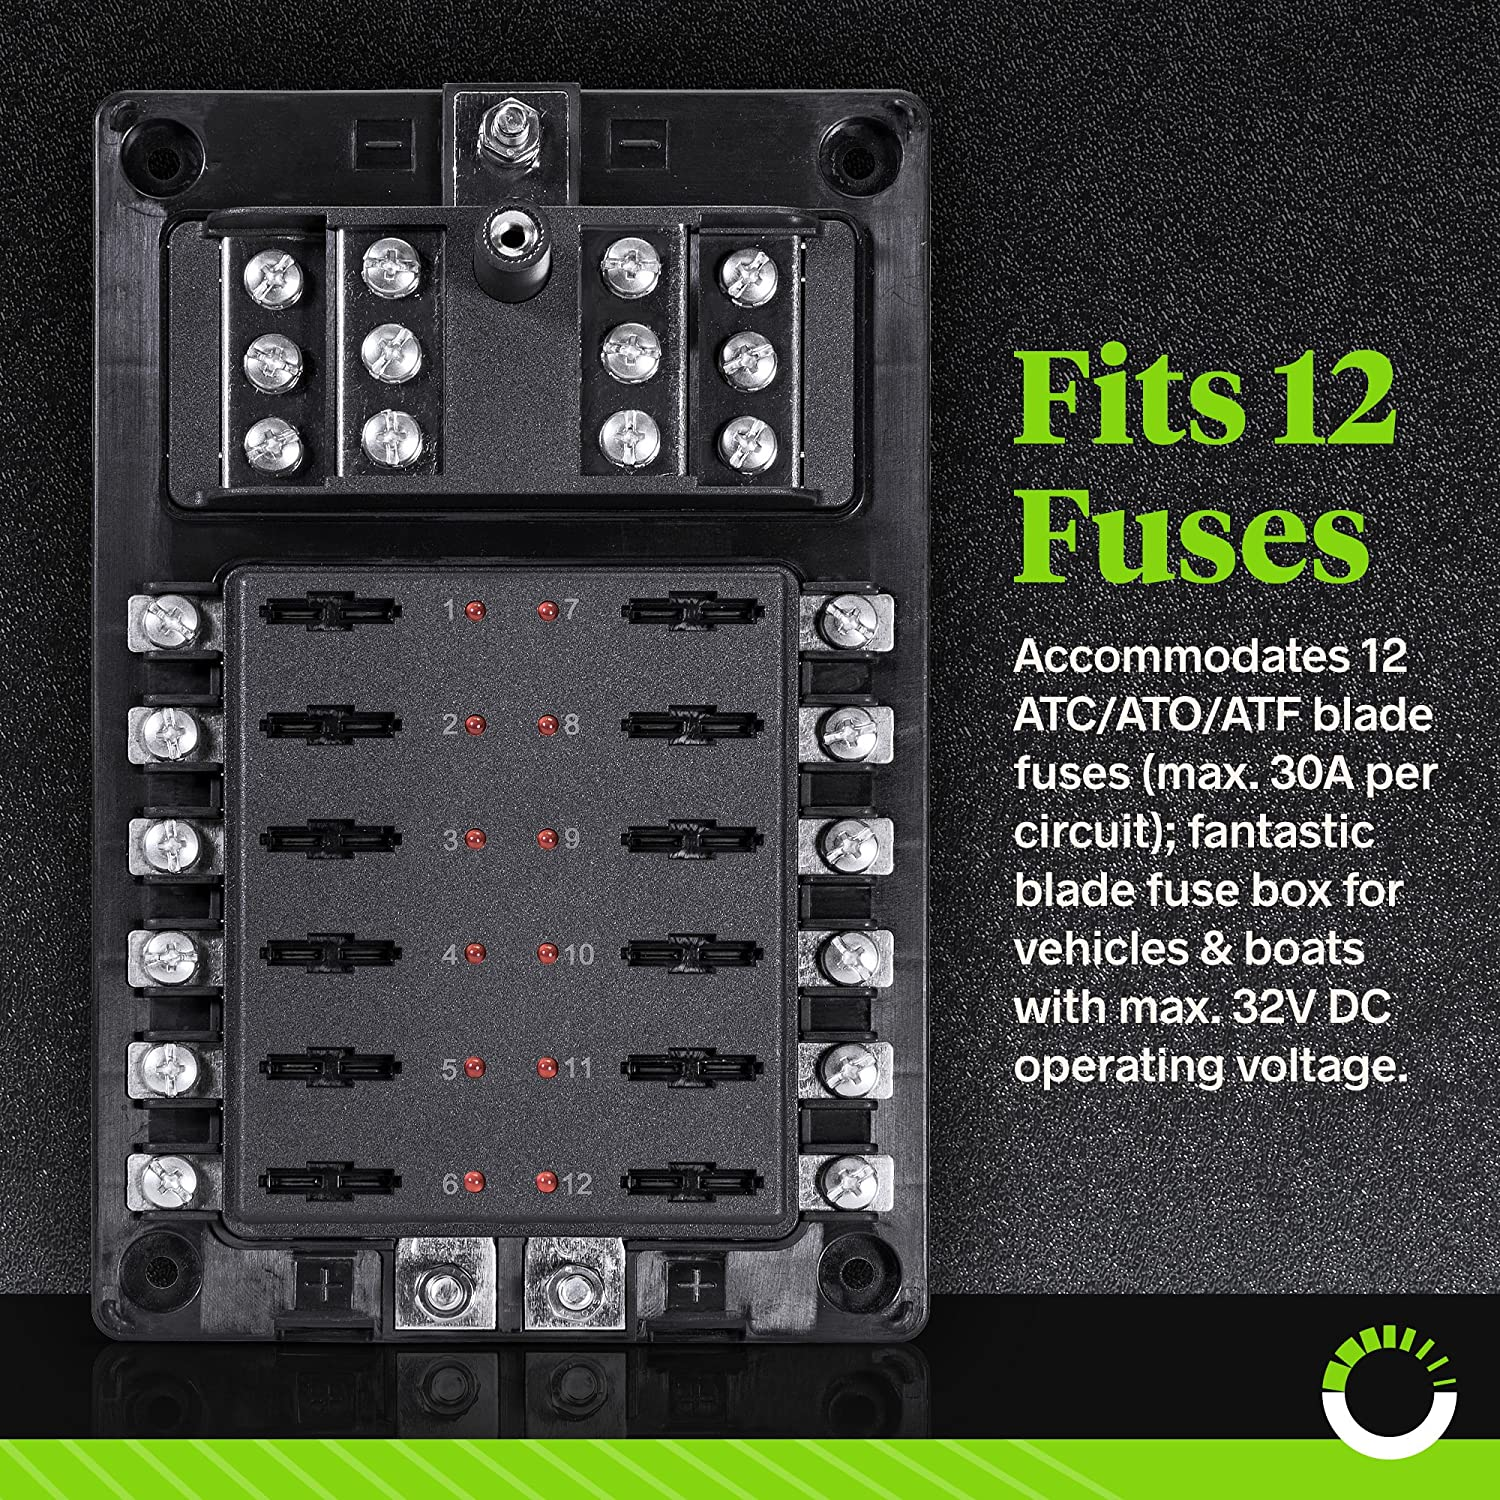 12 Circuit Blade Fuse Block W Thumbscrew Cover Led Box O Indicator Negative Ground Connection Dual Independent Positive Connections Stainless